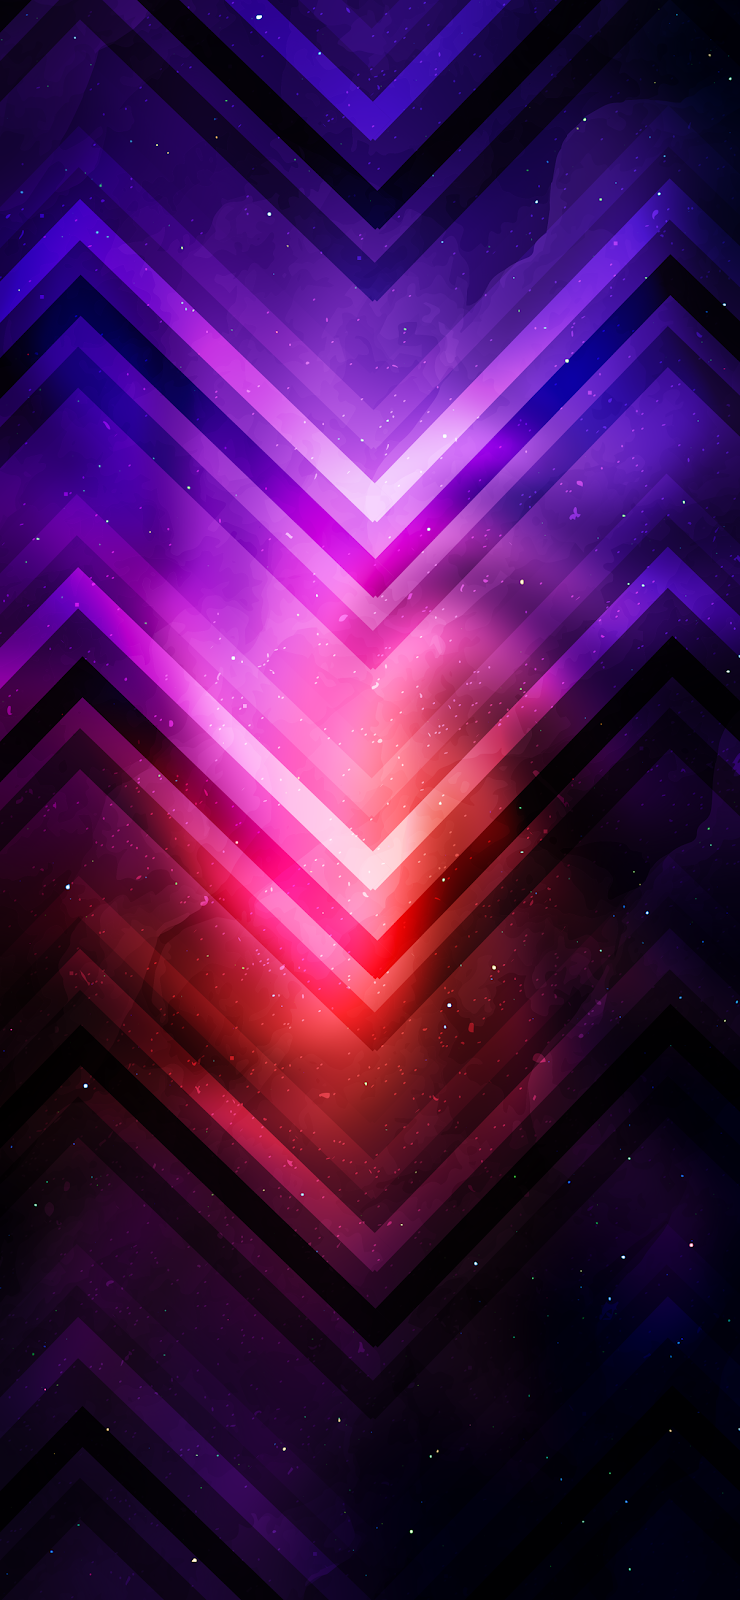 Dope colorful wallpaper